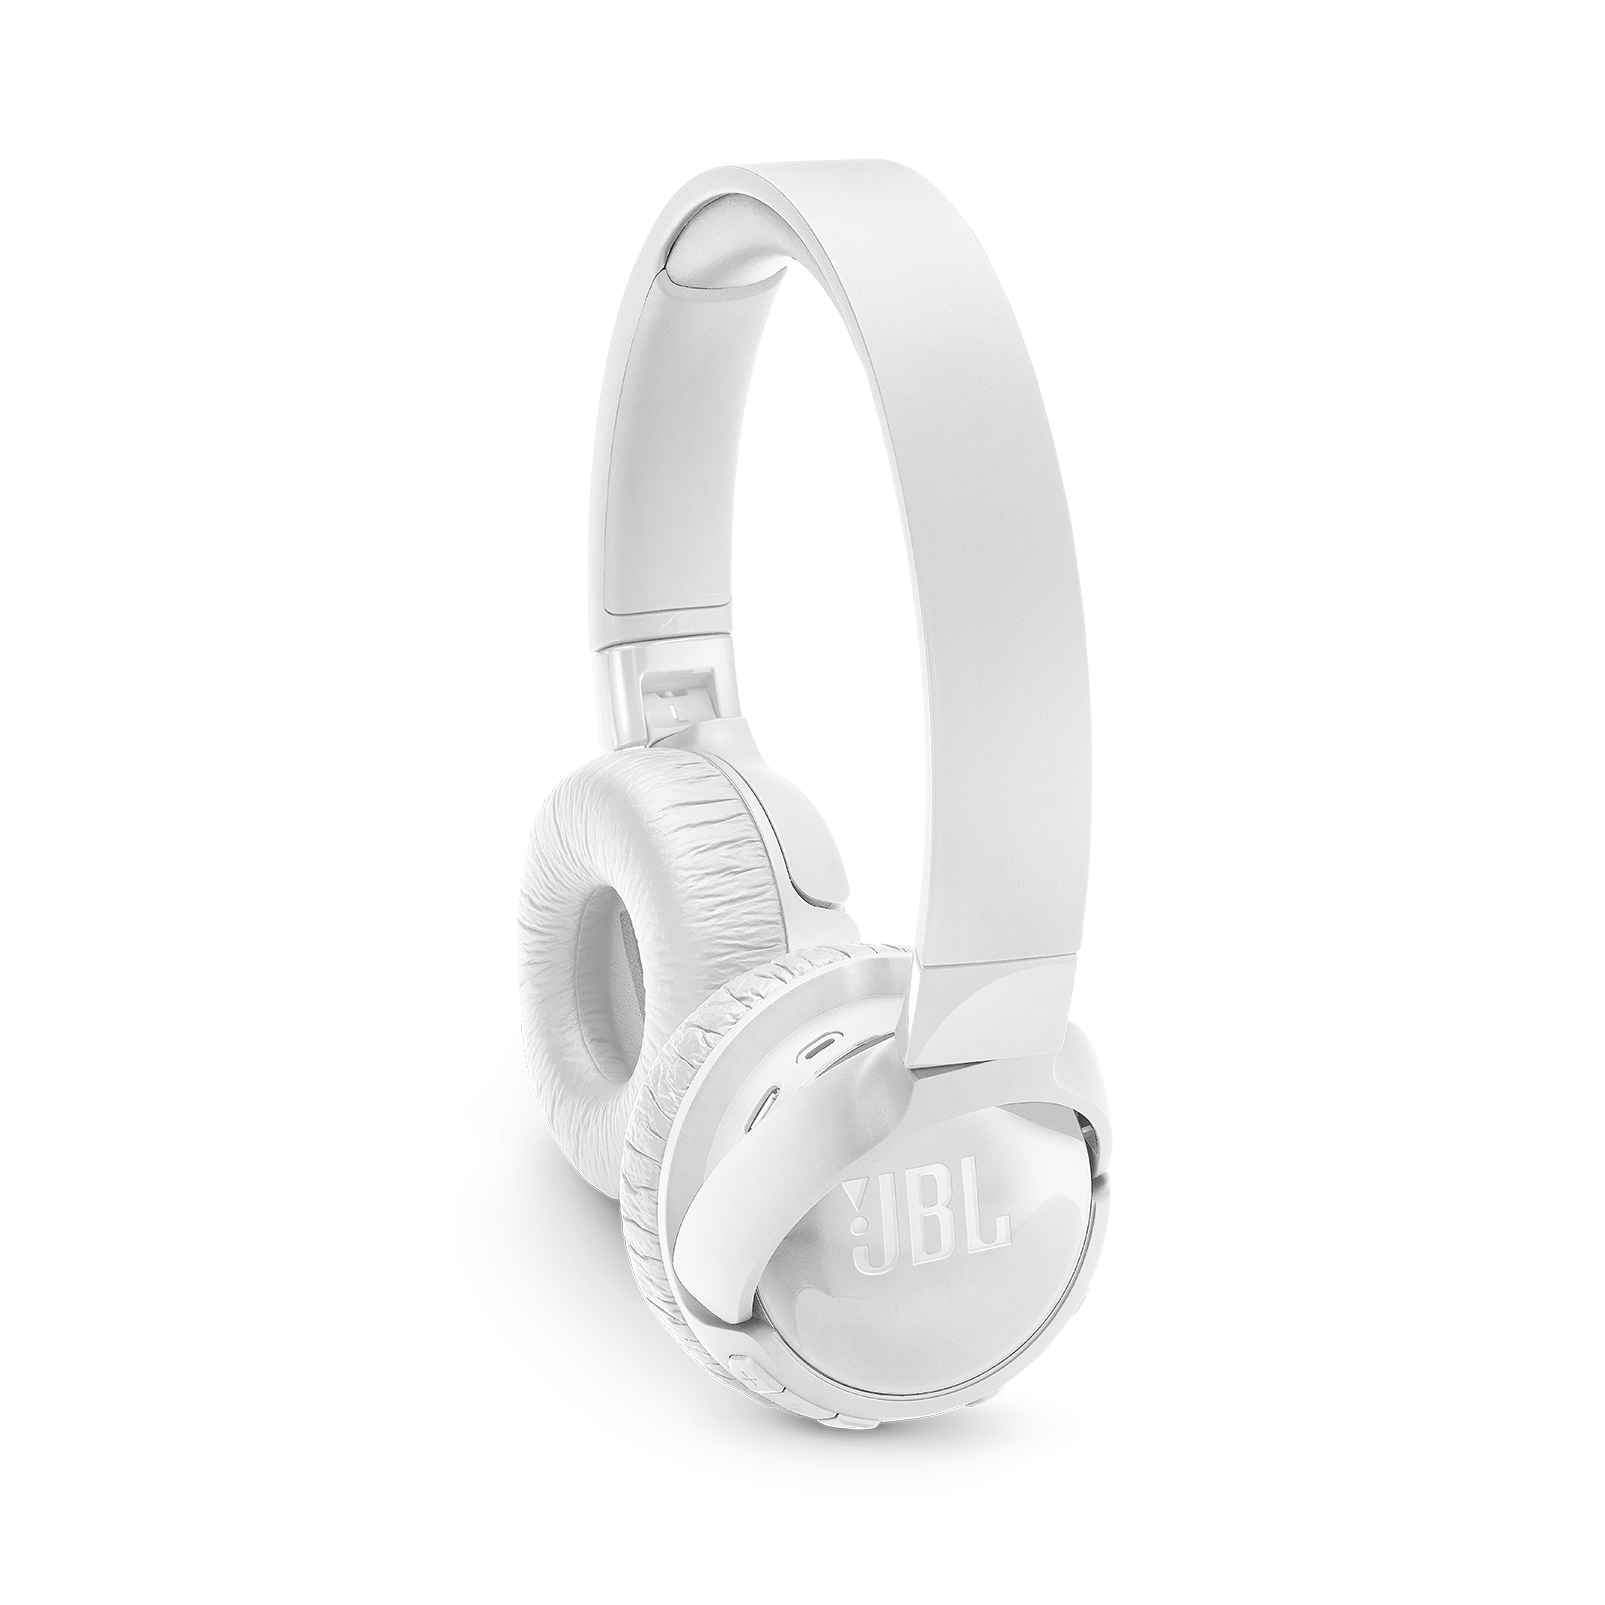 JBL TUNE 600BTNC - White - Wireless, on-ear, active noise-cancelling headphones. - Detailshot 1